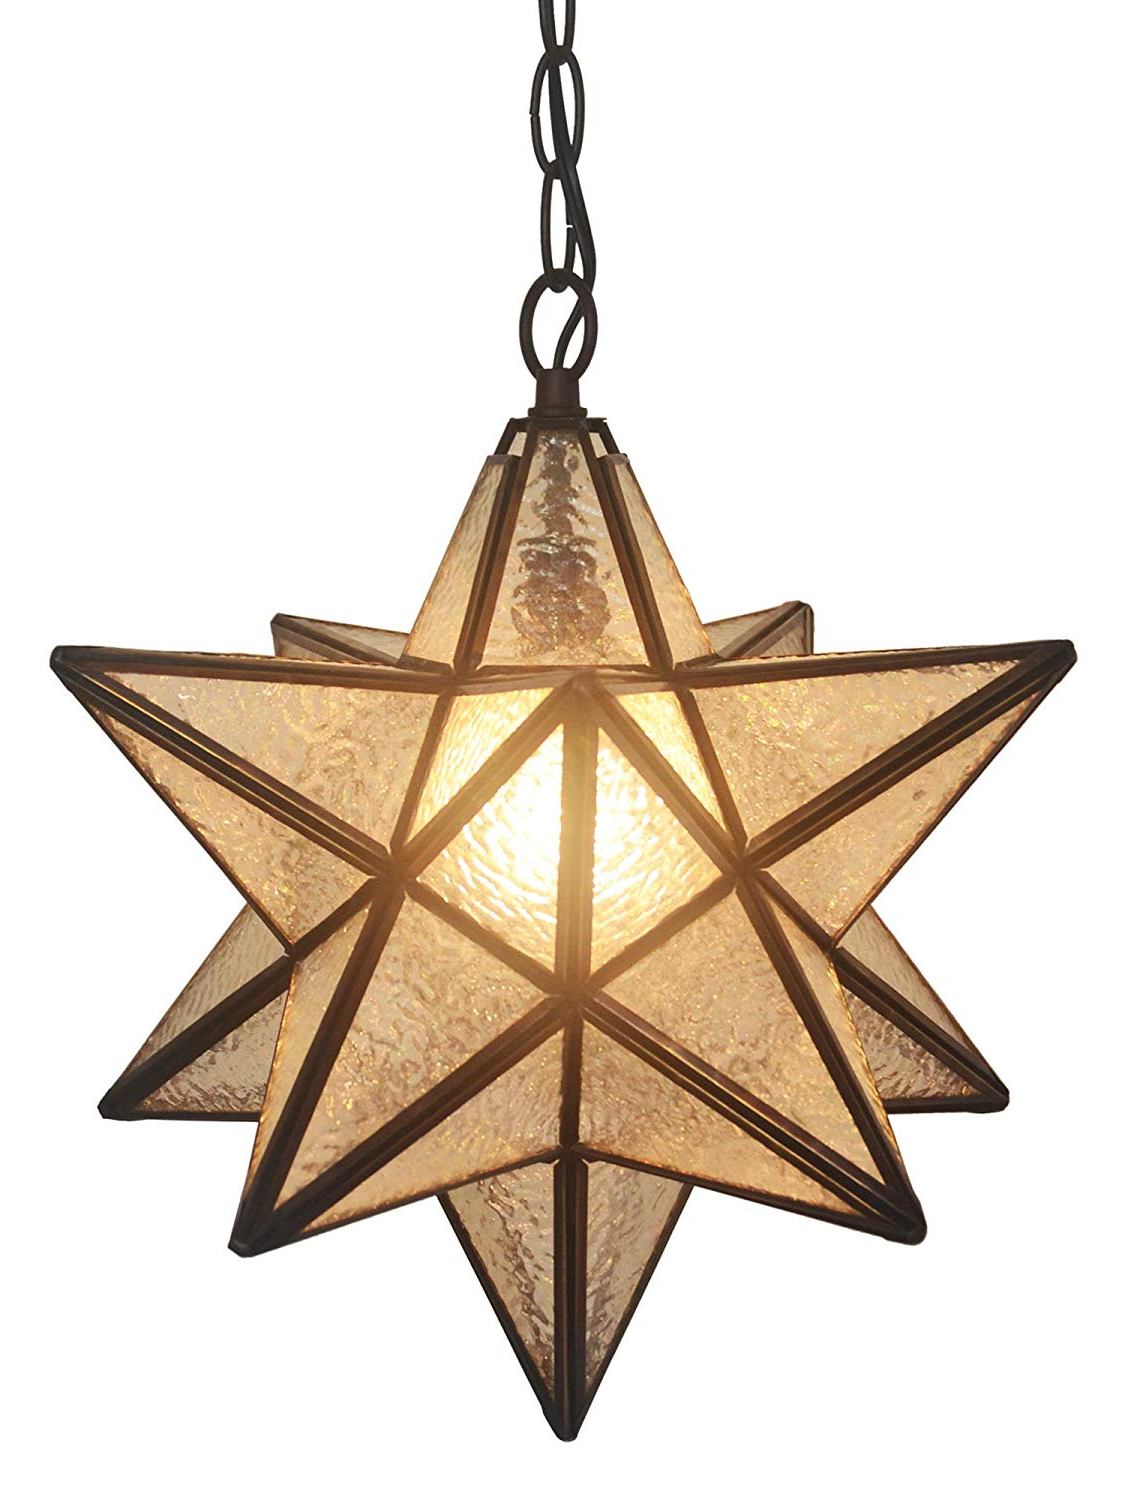 1-Light Single Star Pendants for Current Ht Tiffany Style Hanging Lighting, Single Head 13 Inch